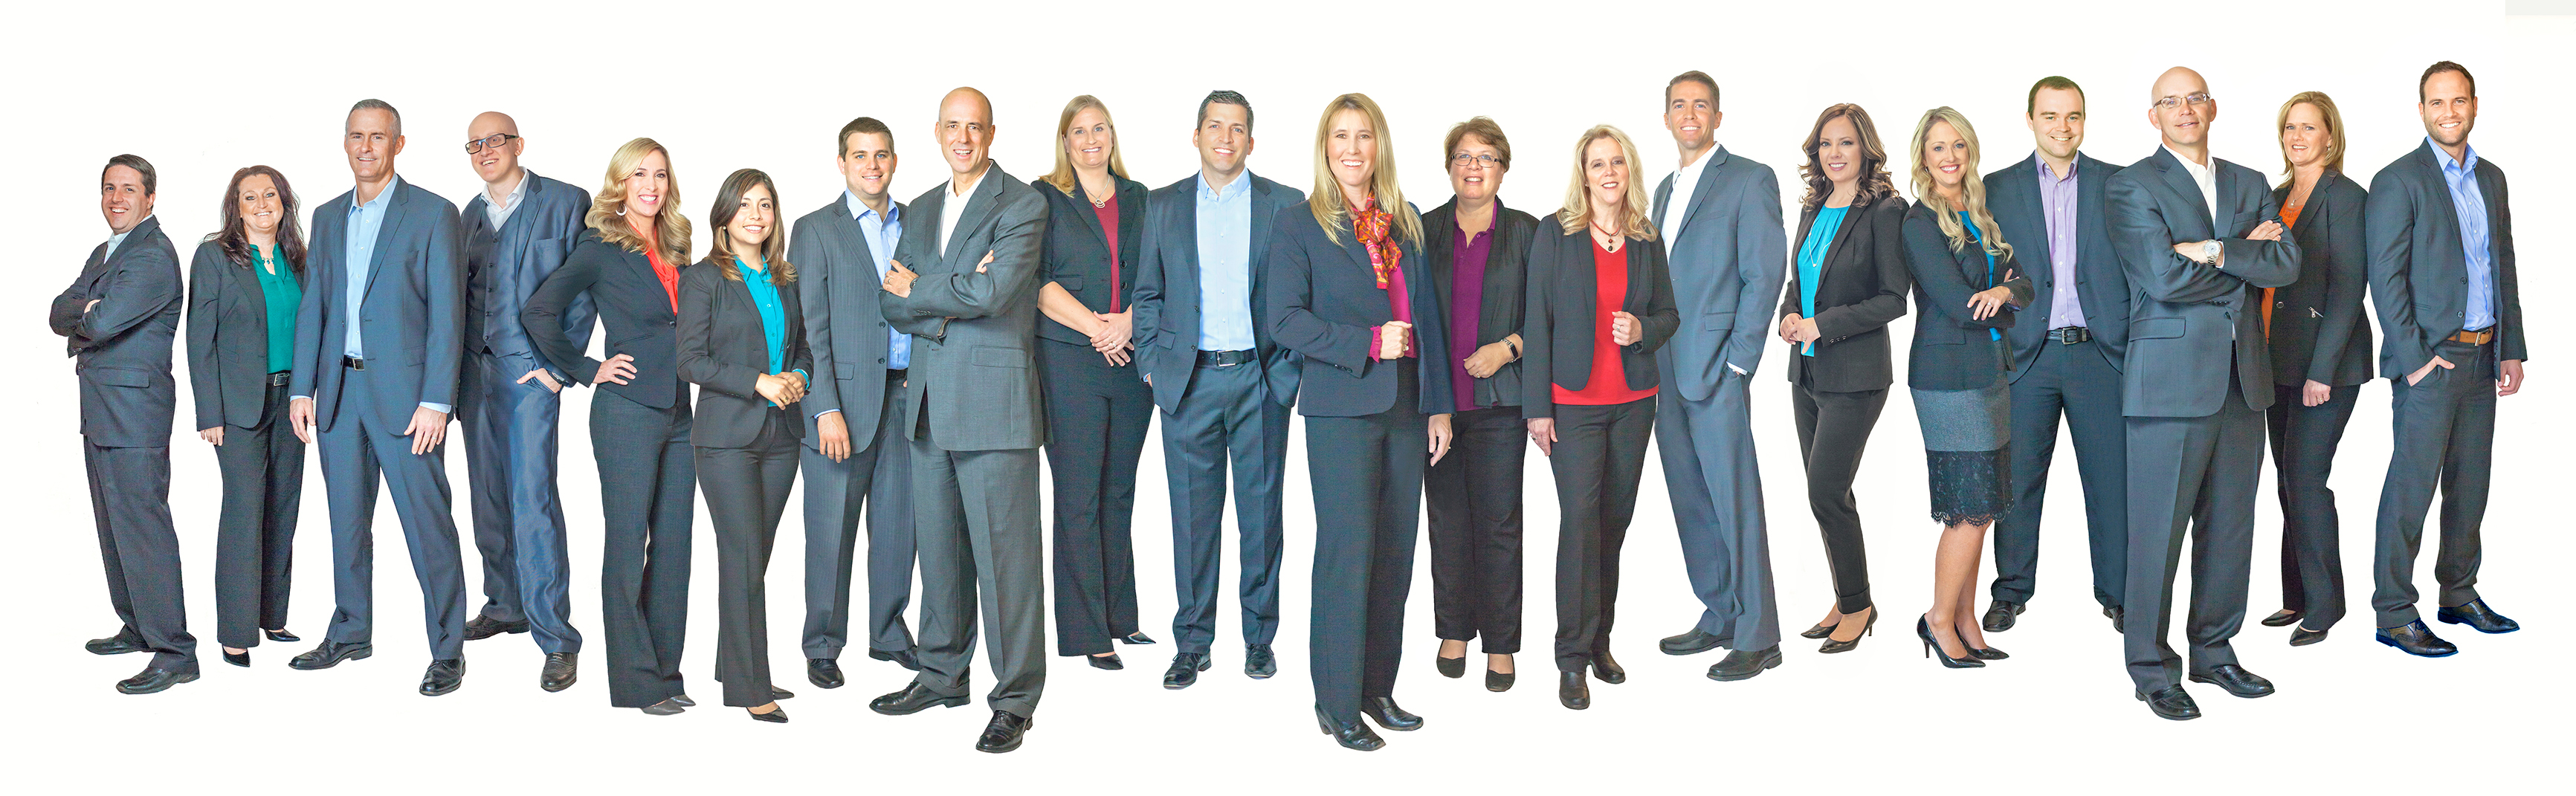 Stoker Ostler advisors standing as a group